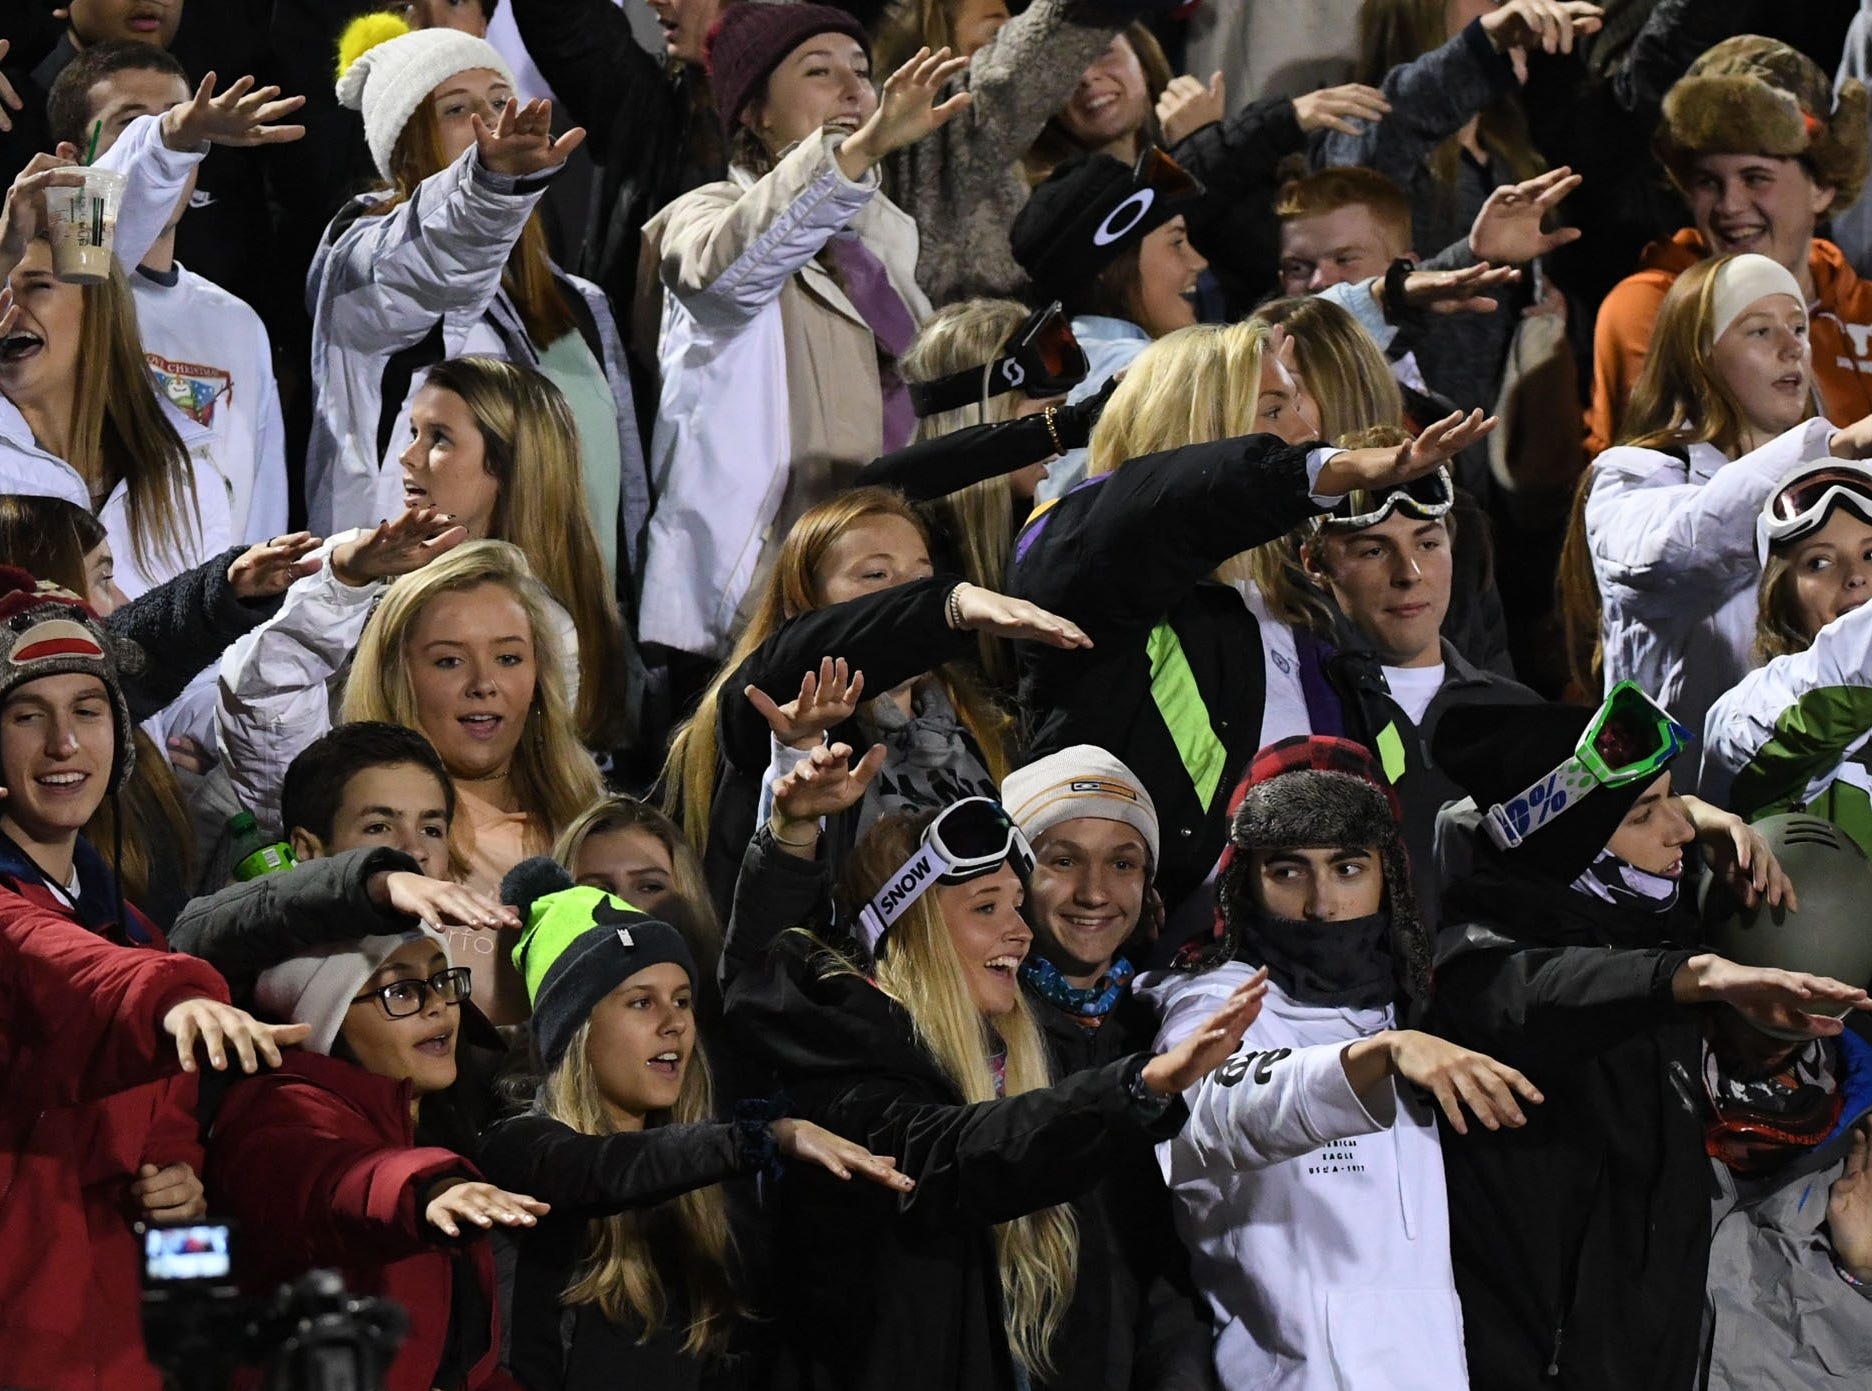 TL Hanna High School fans before the kickoff of the Class AAAAA state playoffs at TL Hanna High School in Anderson on Friday, November 30, 2018.